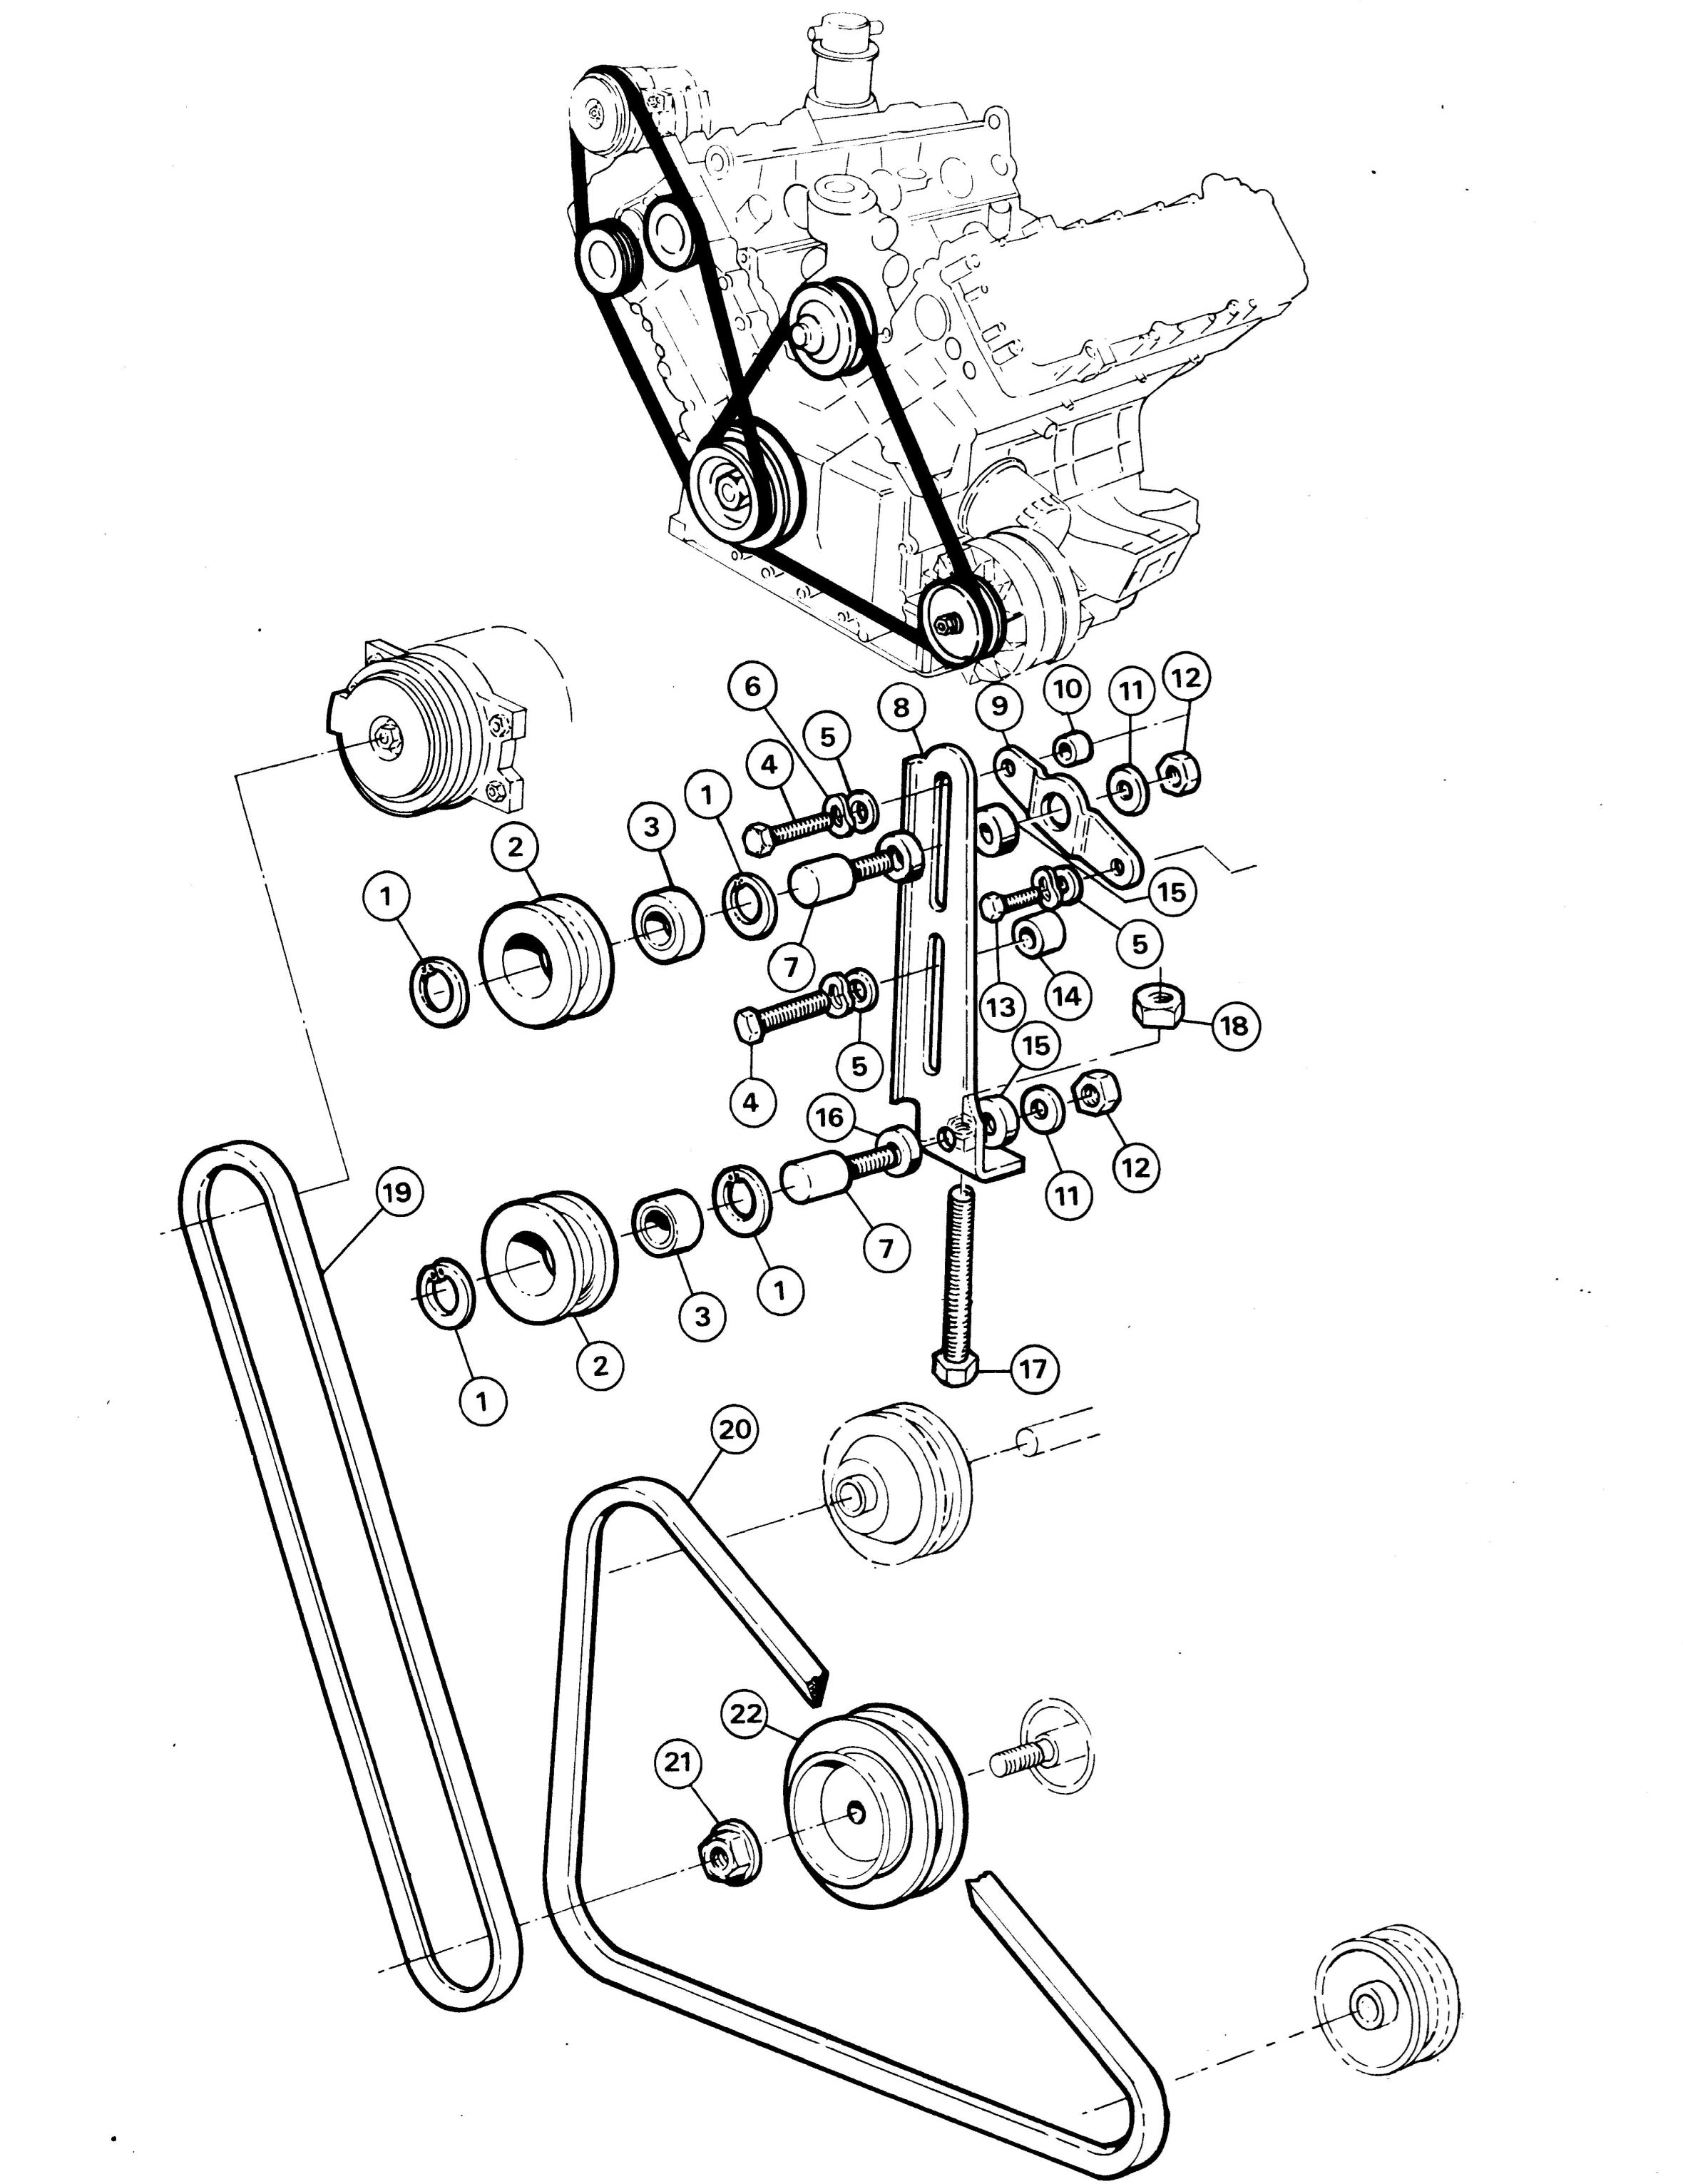 Wiring Diagram For 2000 Oldsmobile Bravada. Oldsmobile